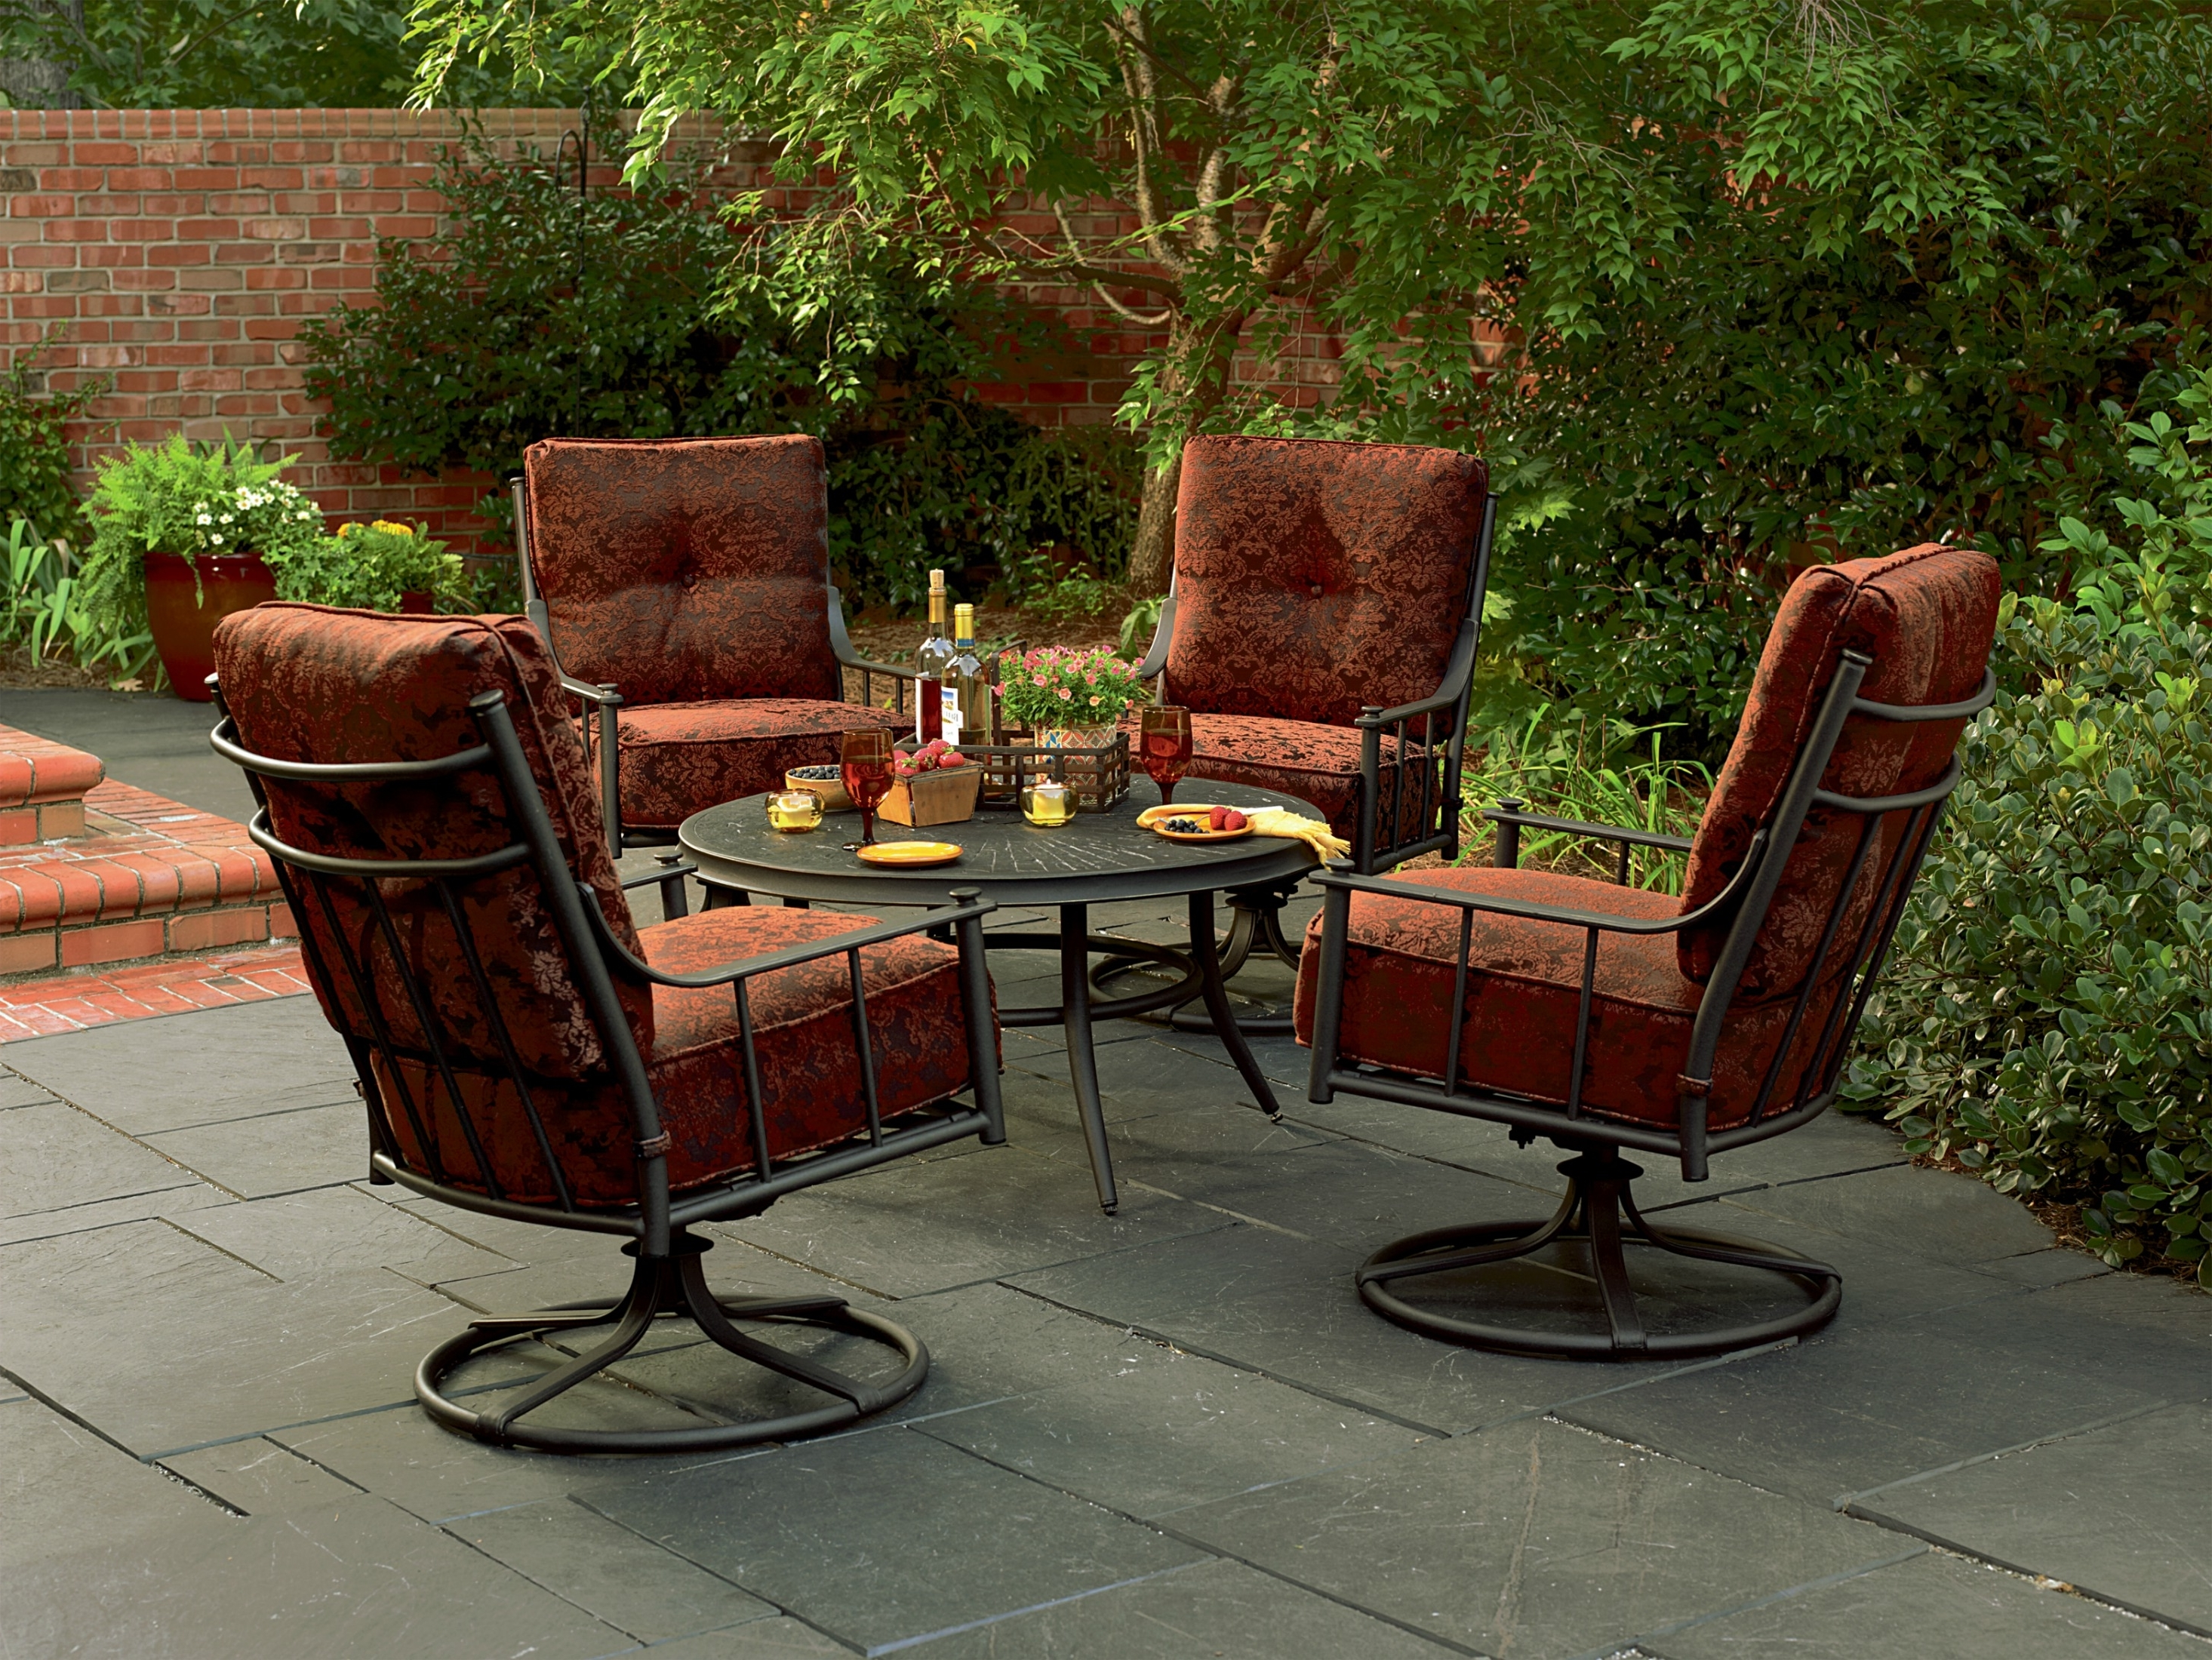 Widely Used Patio Table: Sears Fire Pit Awesome Patio Ideas Patio Furniture Sets Pertaining To Sears Patio Furniture Conversation Sets (View 7 of 15)